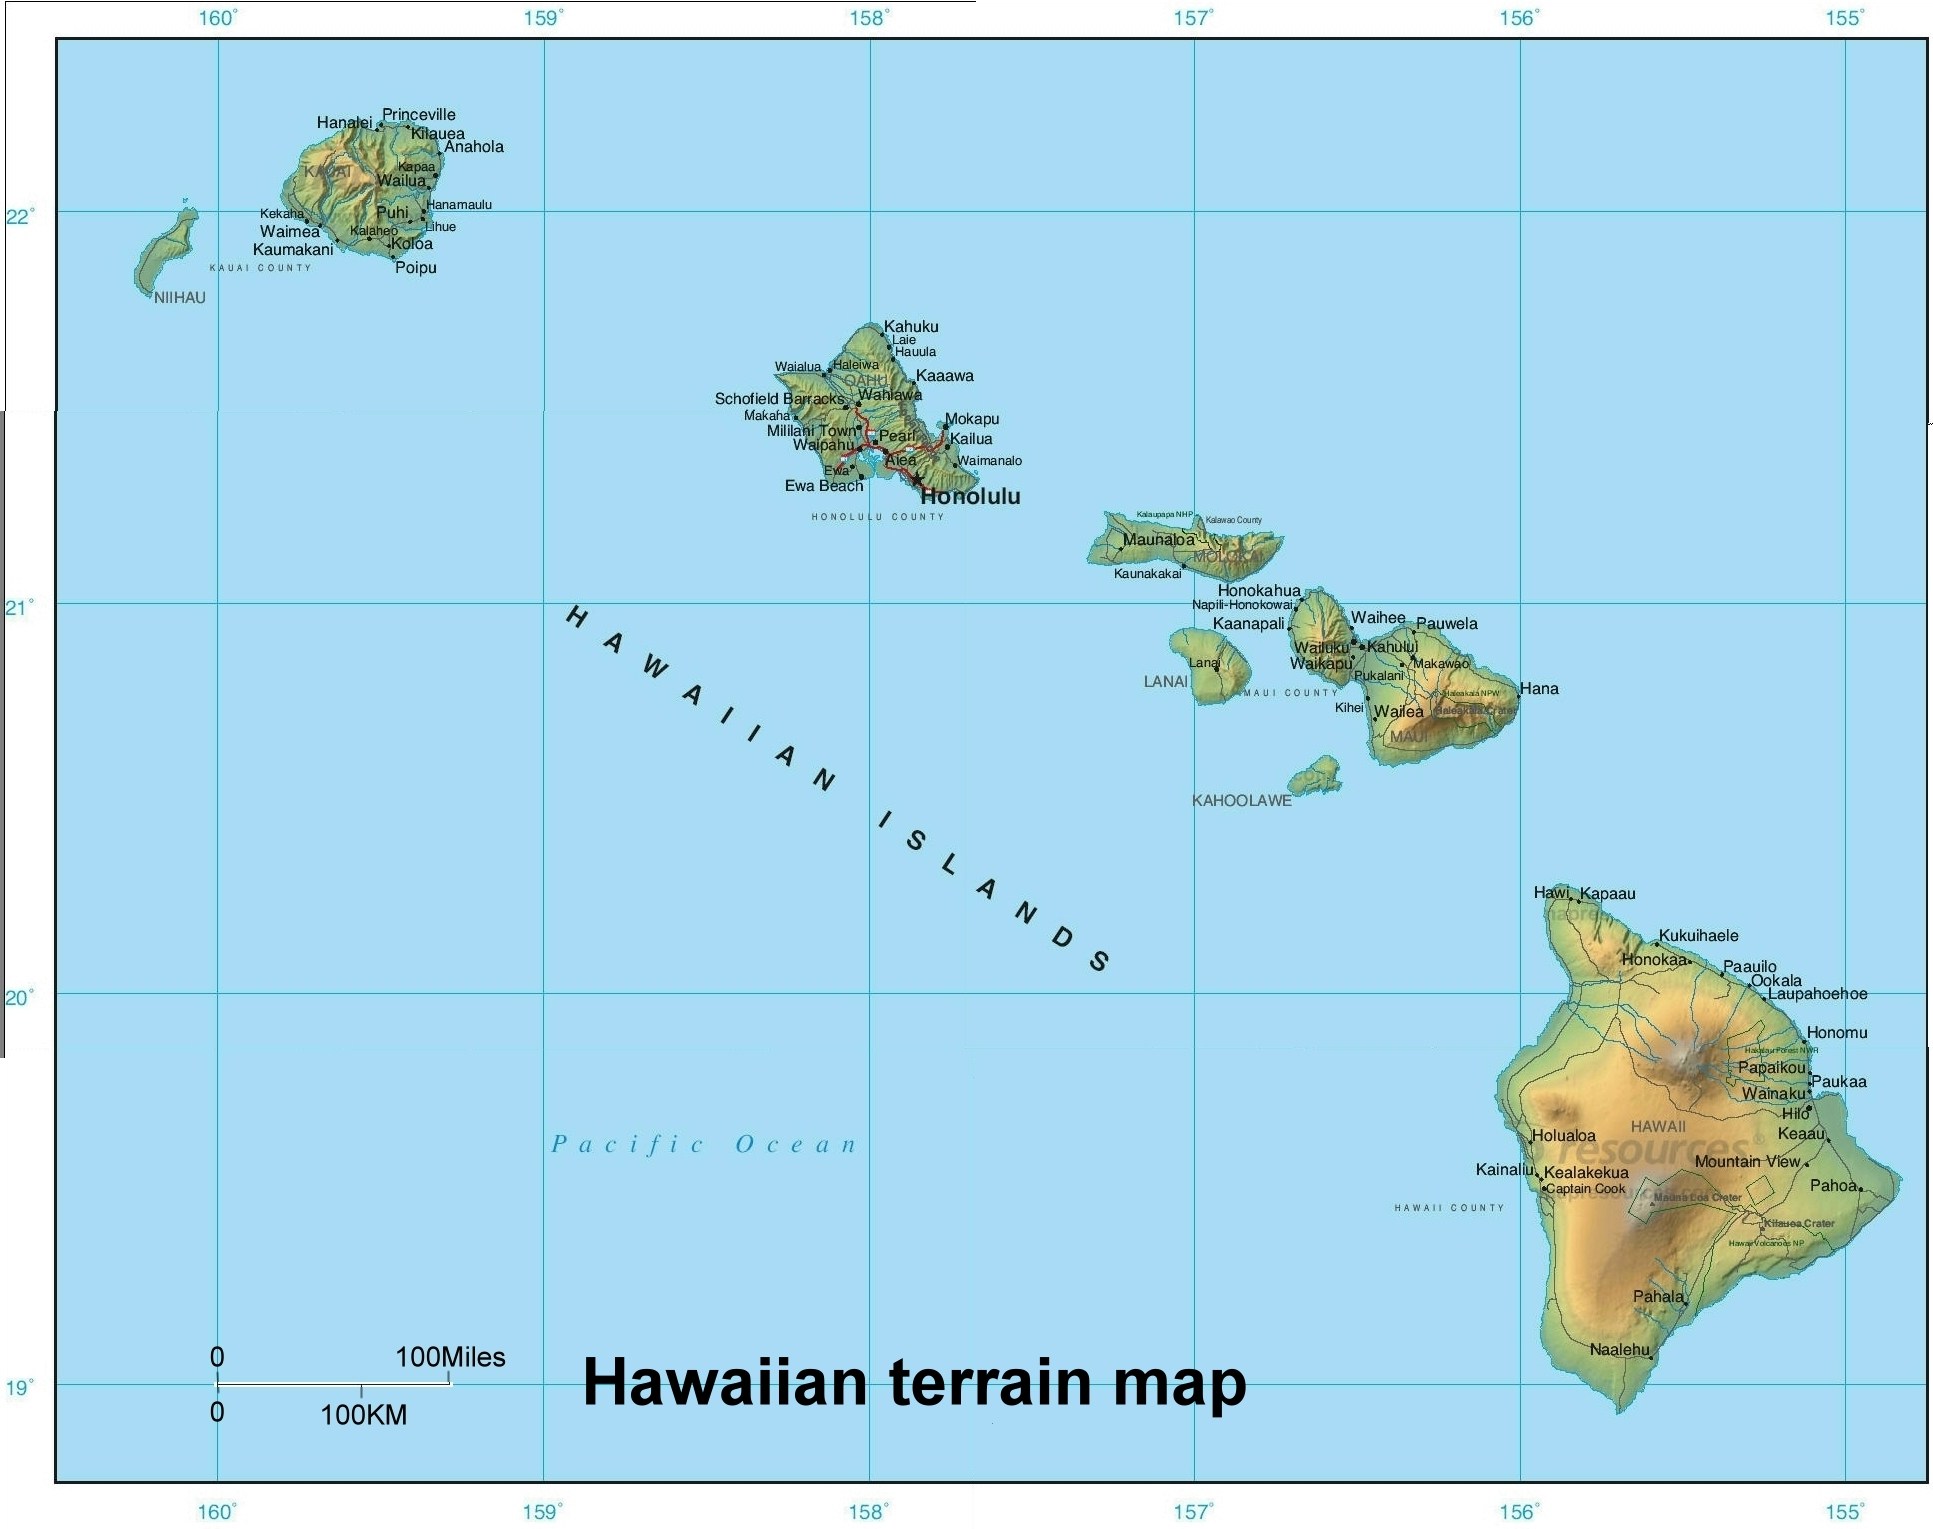 Honolulu hawaii world map afputra similiar map of hawaii on world map keywords which hawaiian island is the most progressive leftwing gumiabroncs